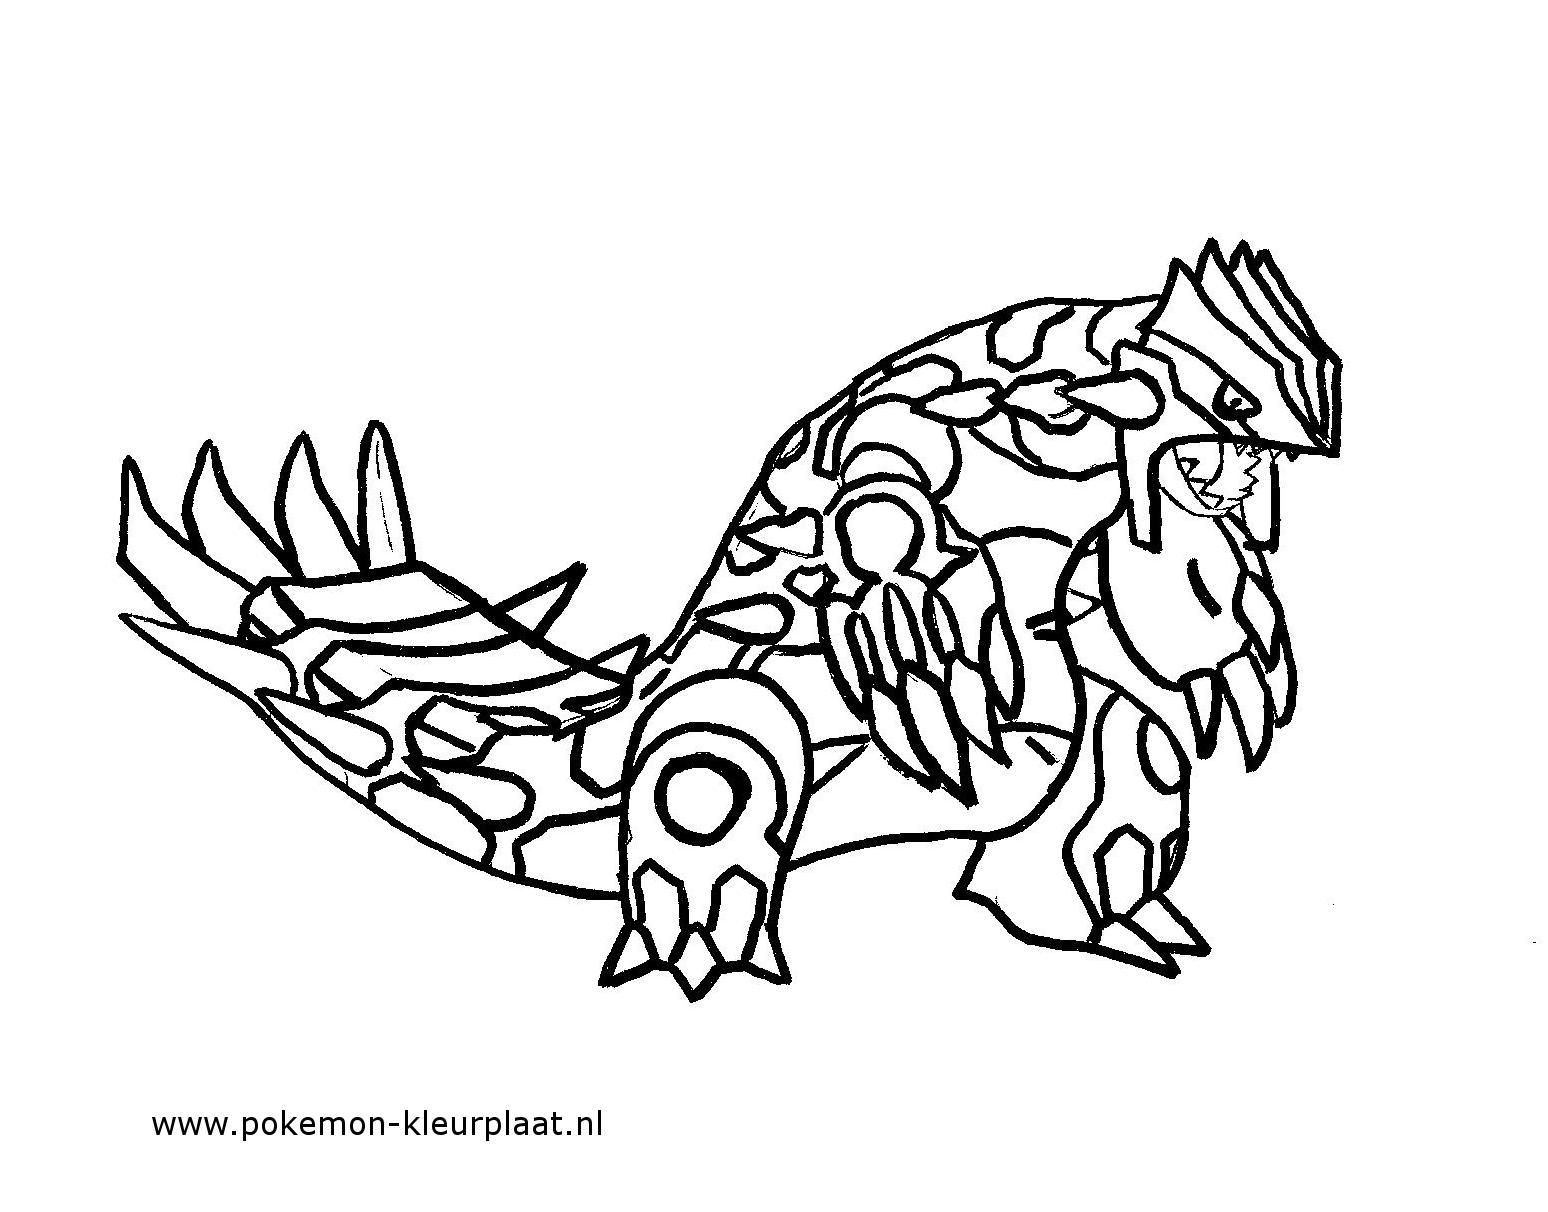 Primal Kyogre Coloring Page 8 best omega ruby and alpha sapphire kleurplaten images on